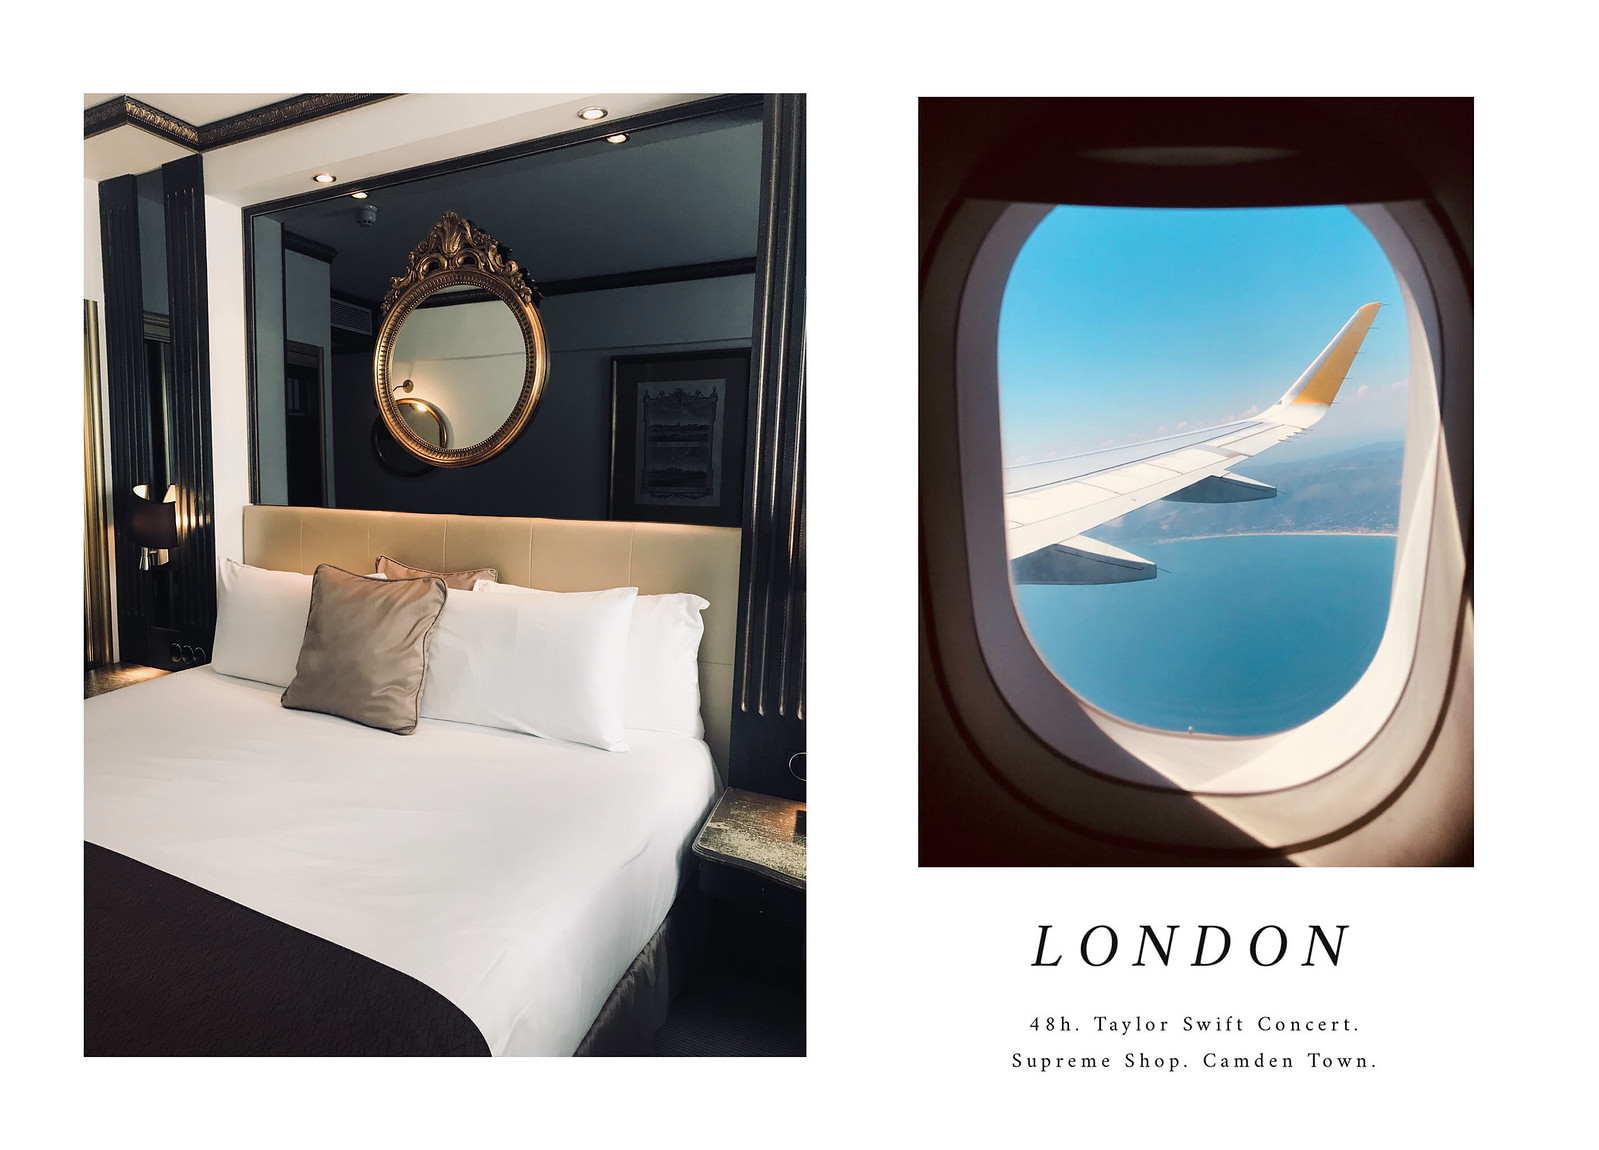 01_viajar_londres_2_dias_concierto_taylor_swift_theguestgirl_instax_fujifilm_laura_santolaria_londres_noholita_london_fashion_blogger_revolve_brand_ambassador_the_guest_girl_london